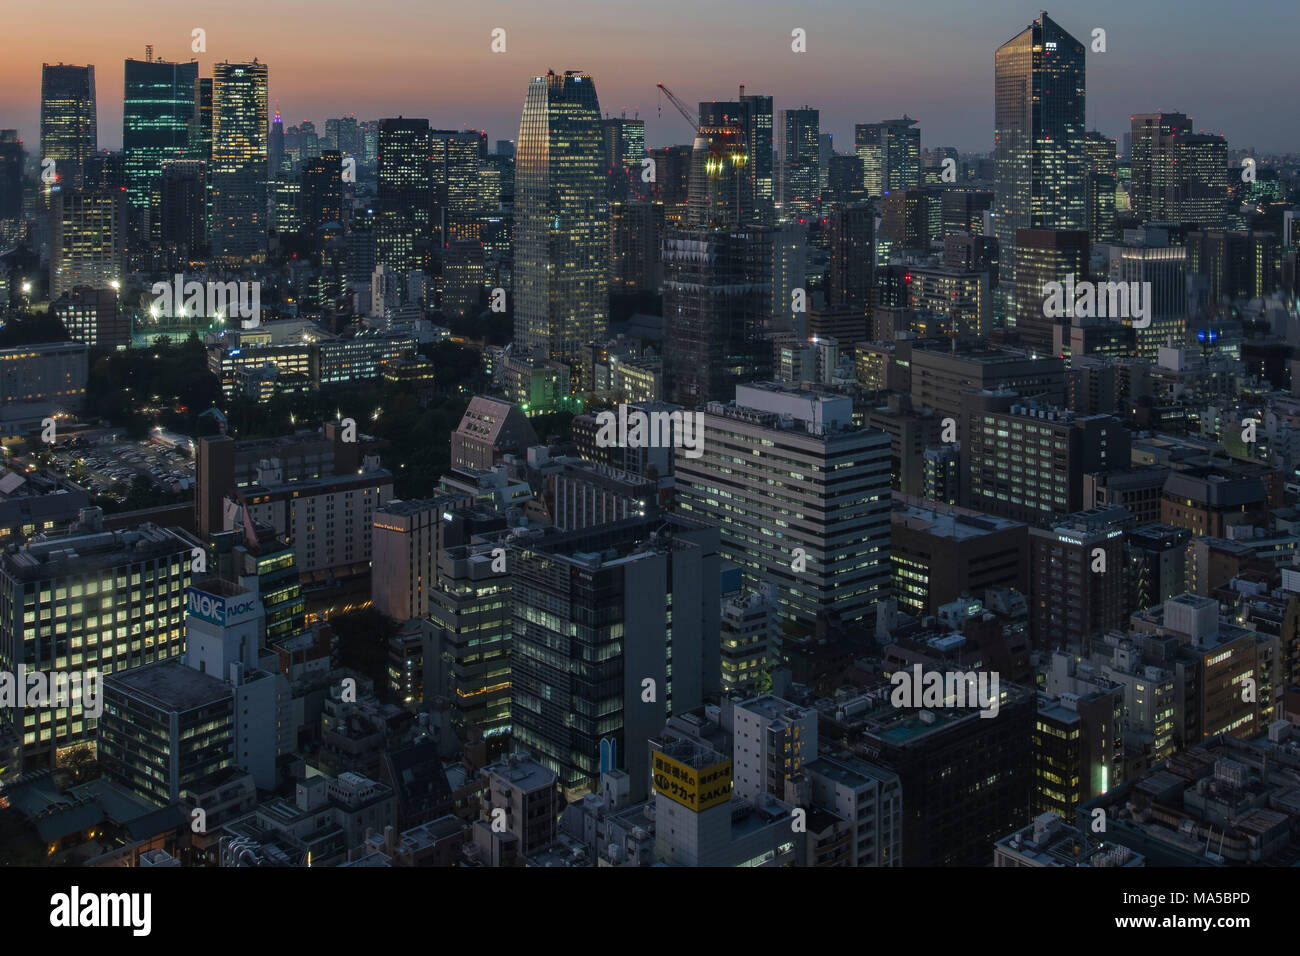 Asia, Japan, Nihon, Nippon, Tokyo, city overview, Hamamatsucho stadium, view from Tokyo World Trade Center - Stock Image